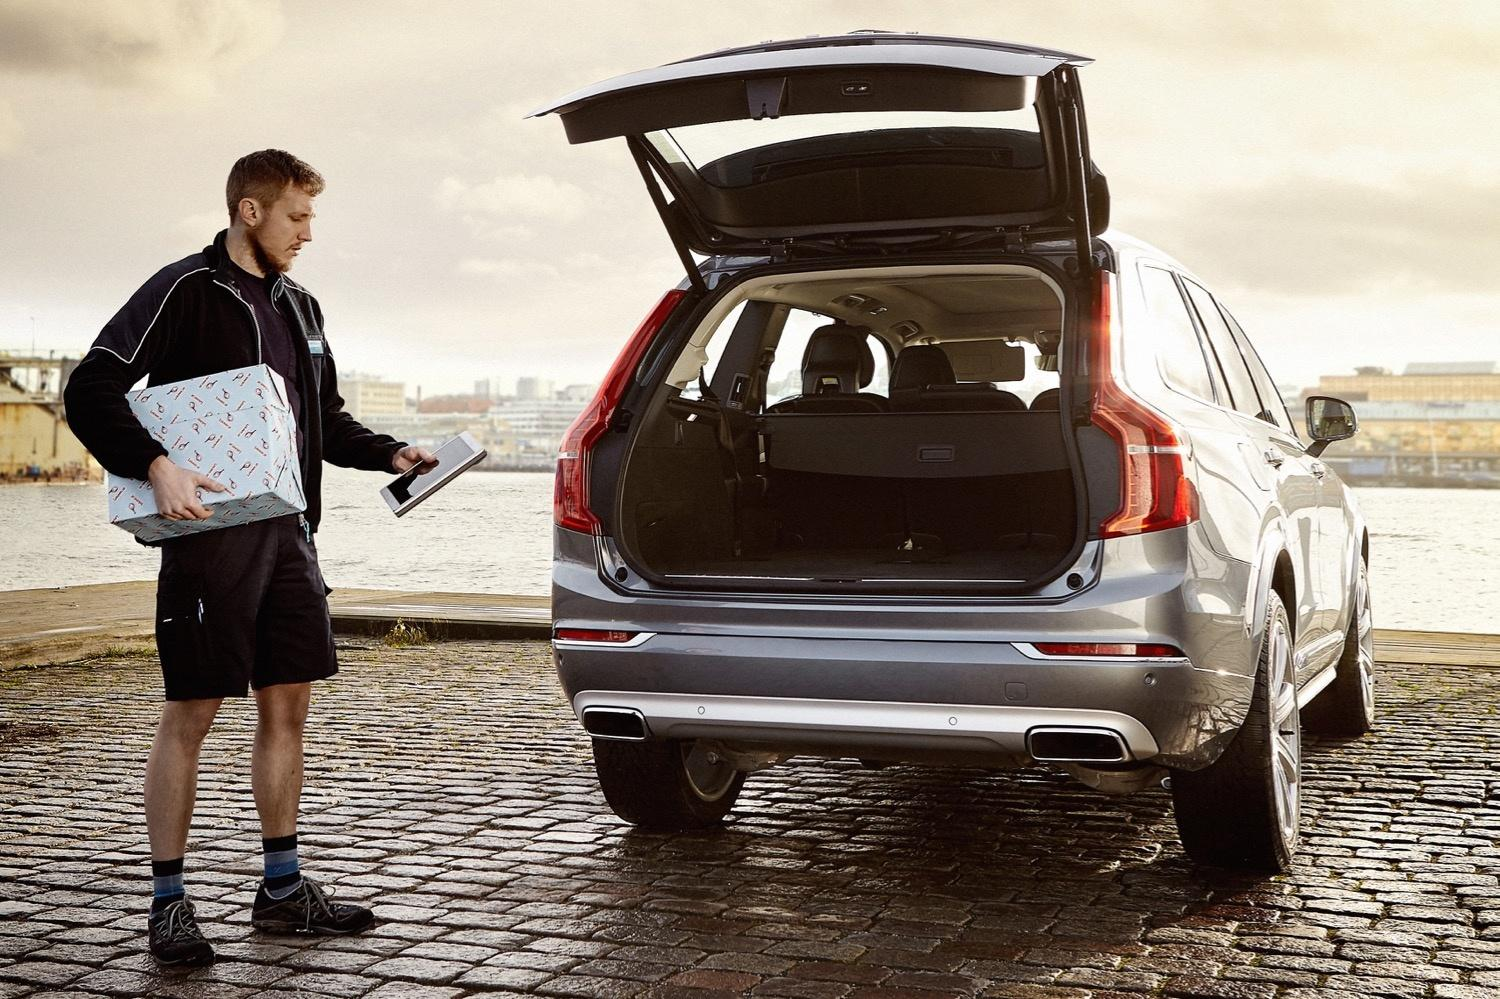 Volvo's in-car delivery service brings a whole new meaning to 'living in your car'